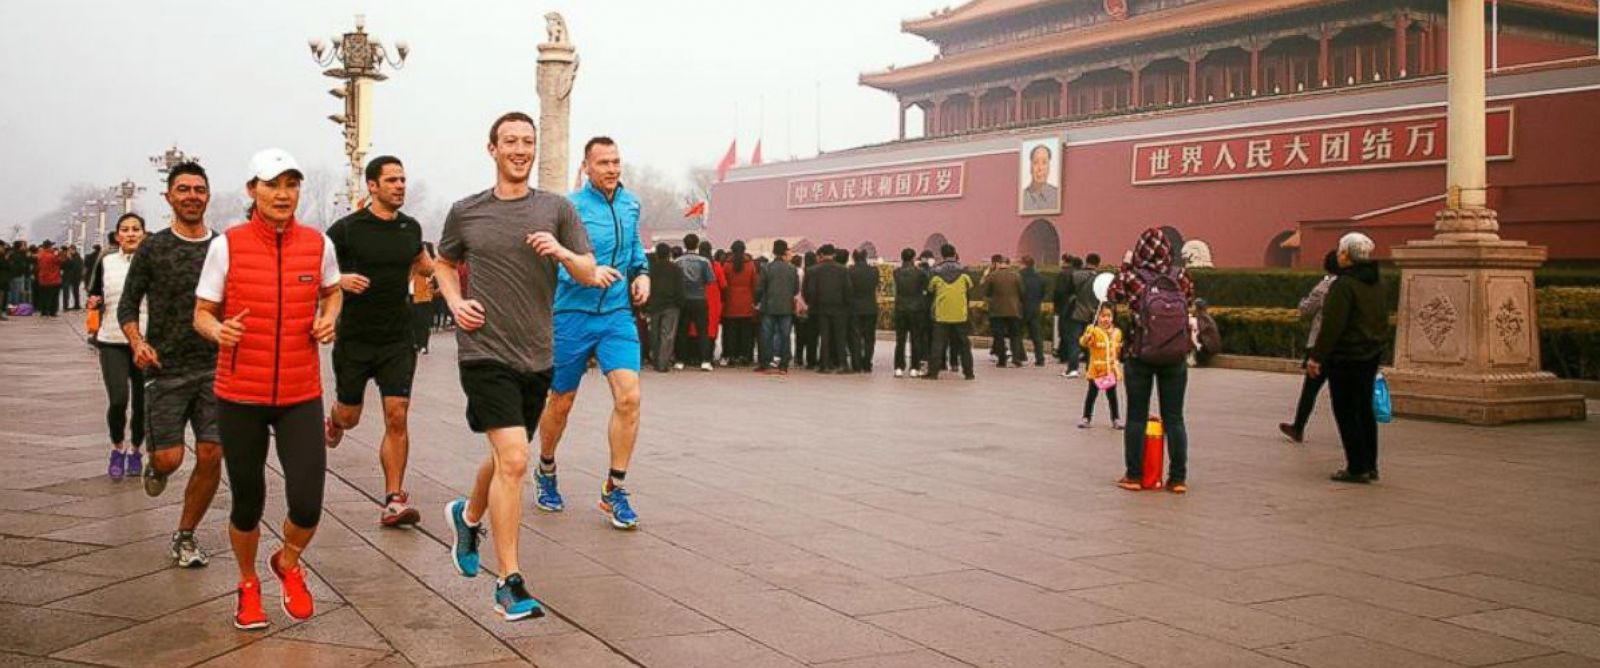 "PHOTO: Mark Zuckerberg posted this photo to his Facebook page, March 18, 2016 with the caption, ""Its great to be back in Beijing! I kicked off my visit with a run through Tiananmen Square, past the Forbidden City and over to the Temple of Heaven."""